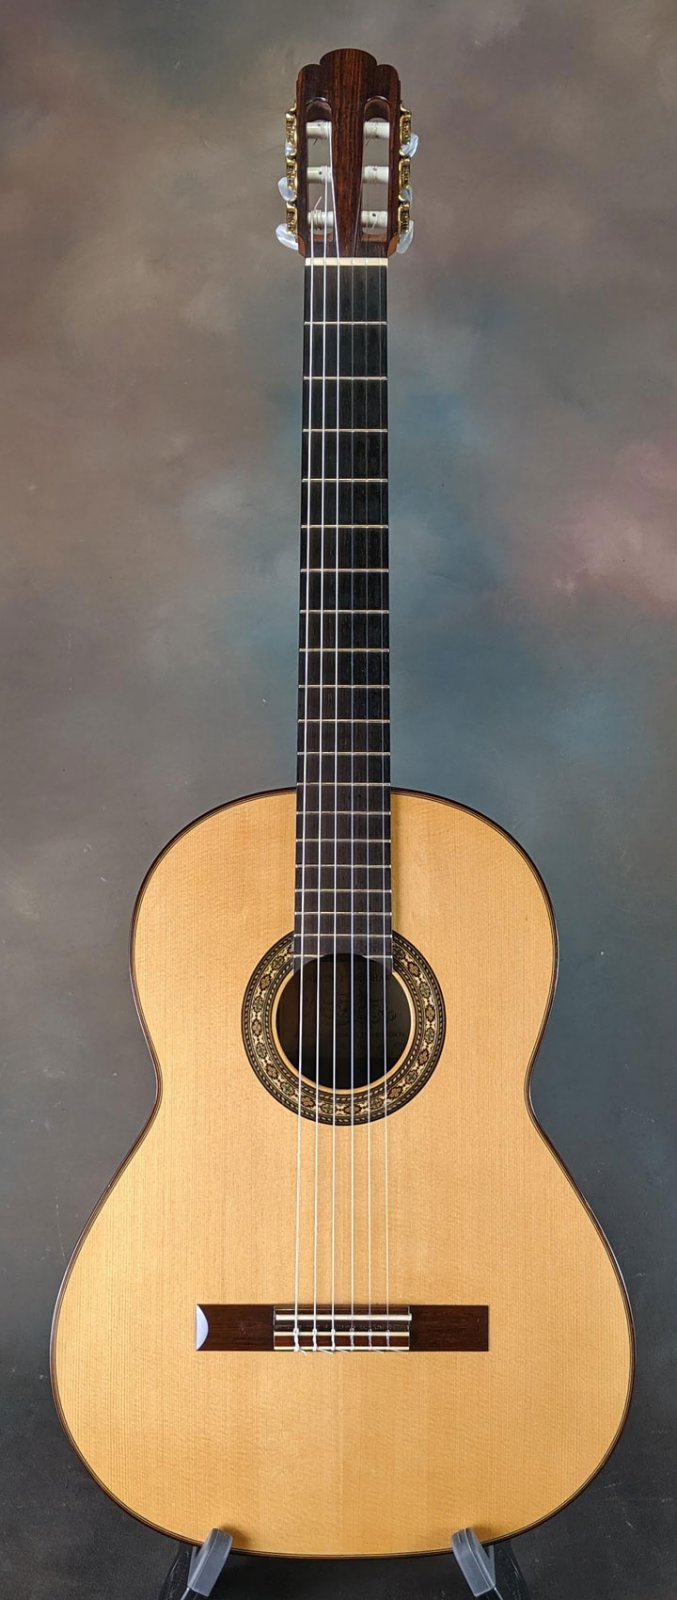 1978 Steven Warshaw Nylon String